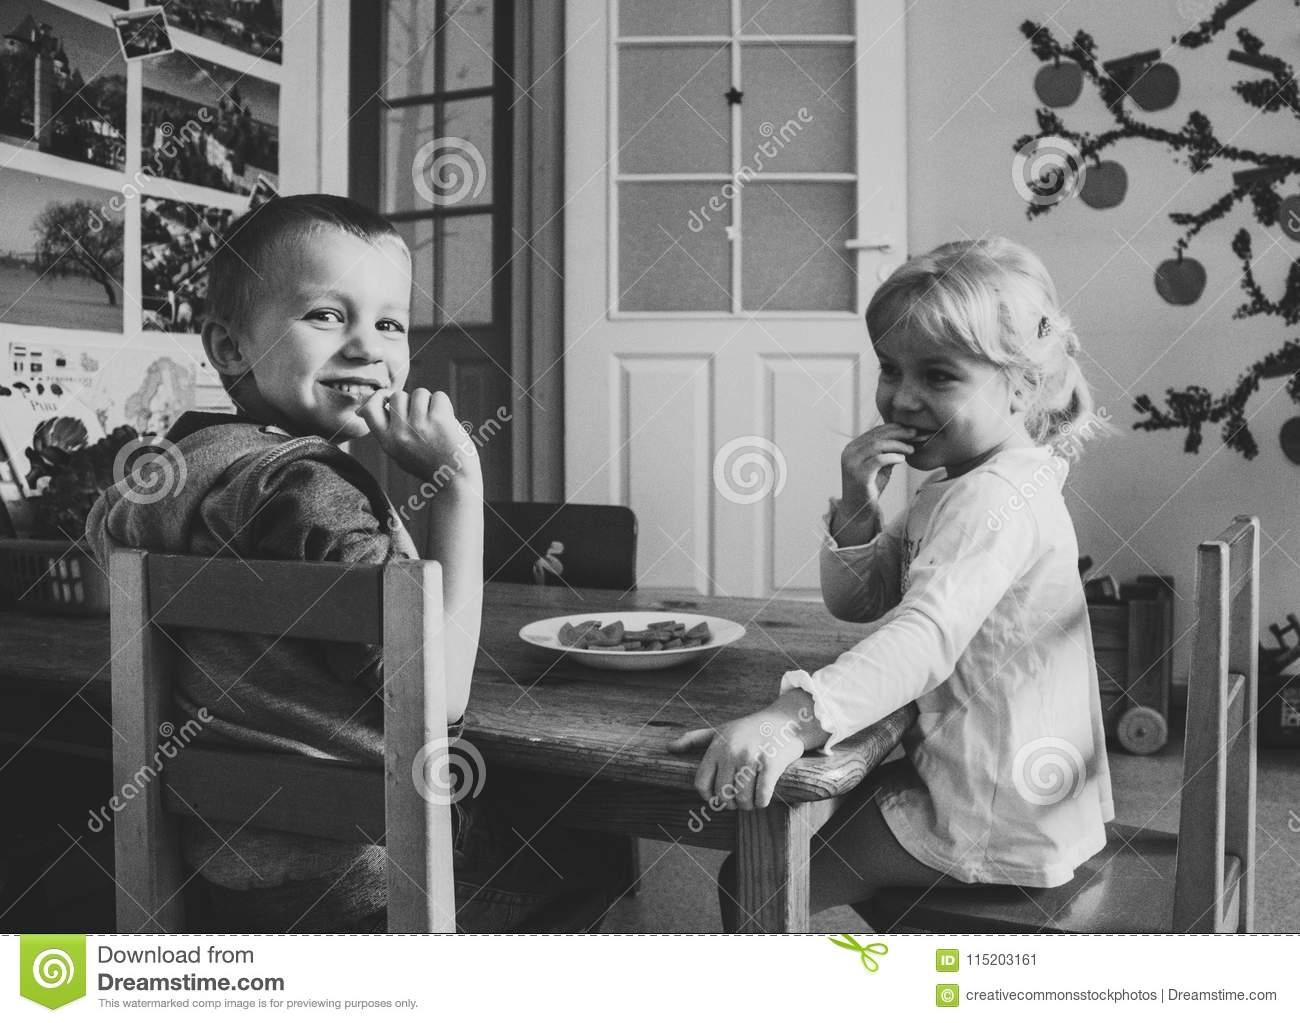 Grayscale Photo Of Two Kids Sitting On Dining Table Chairs Picture Image 115203161